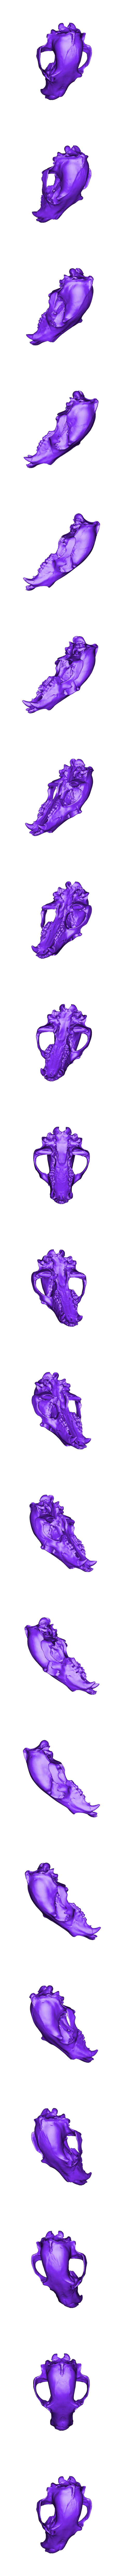 Bear skull top.stl Download STL file Bear skull • 3D print design, Wupsje